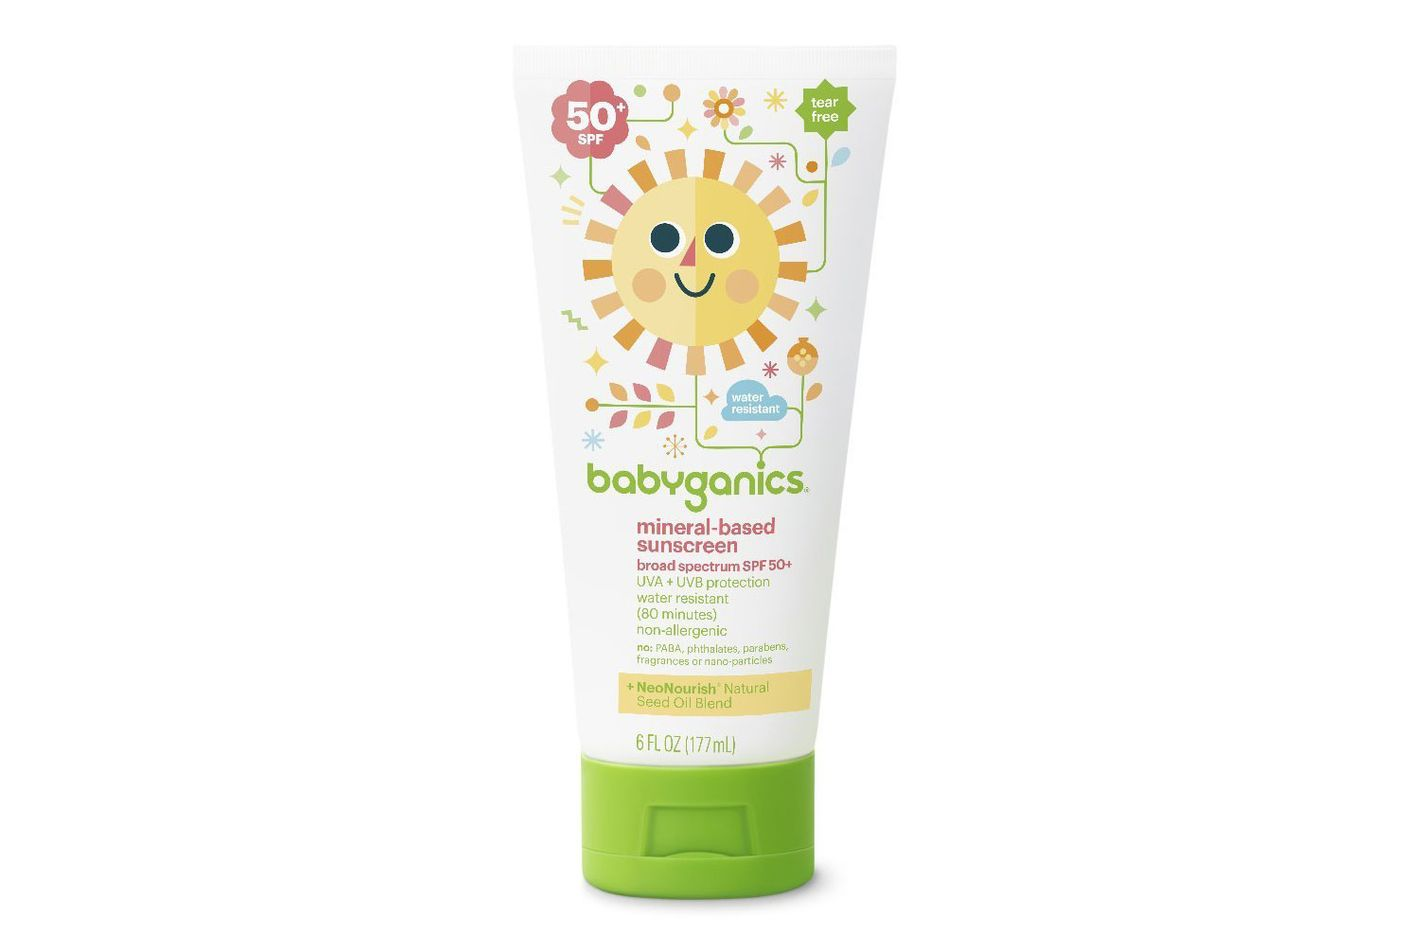 The Best Sunscreen For Kids And Babies 2018